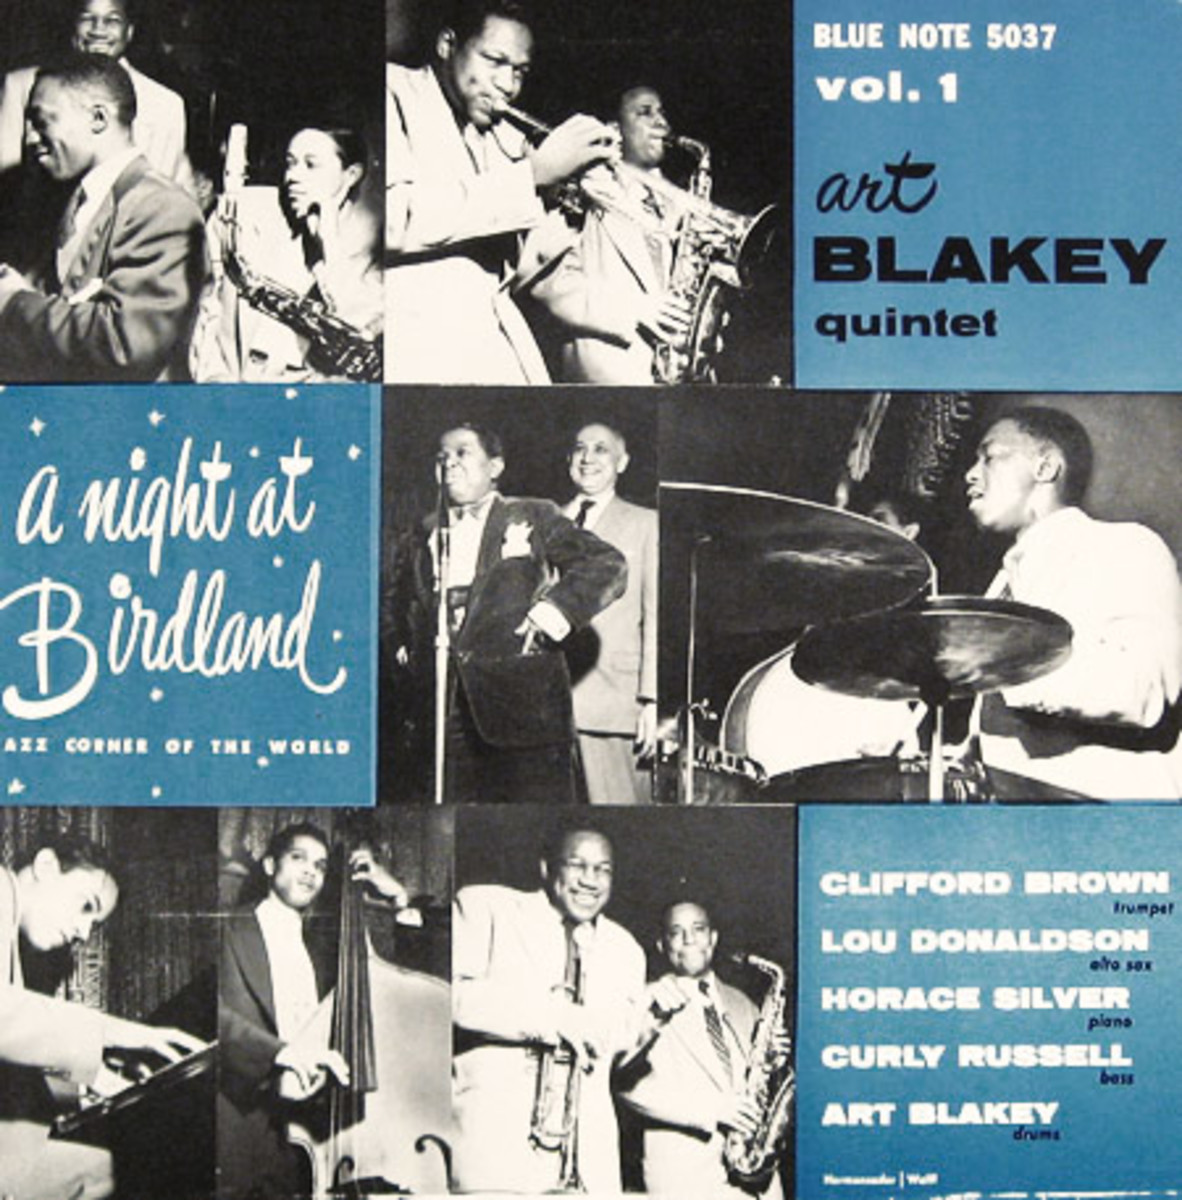 "Art Blakey ""A Night at Birdland, vol. 1"" Blue Note Records 5037 10"" LP Vinyl Microgroove Record (1954) Album Cover Design by John Hermansader, Photos by Francis Wolff"